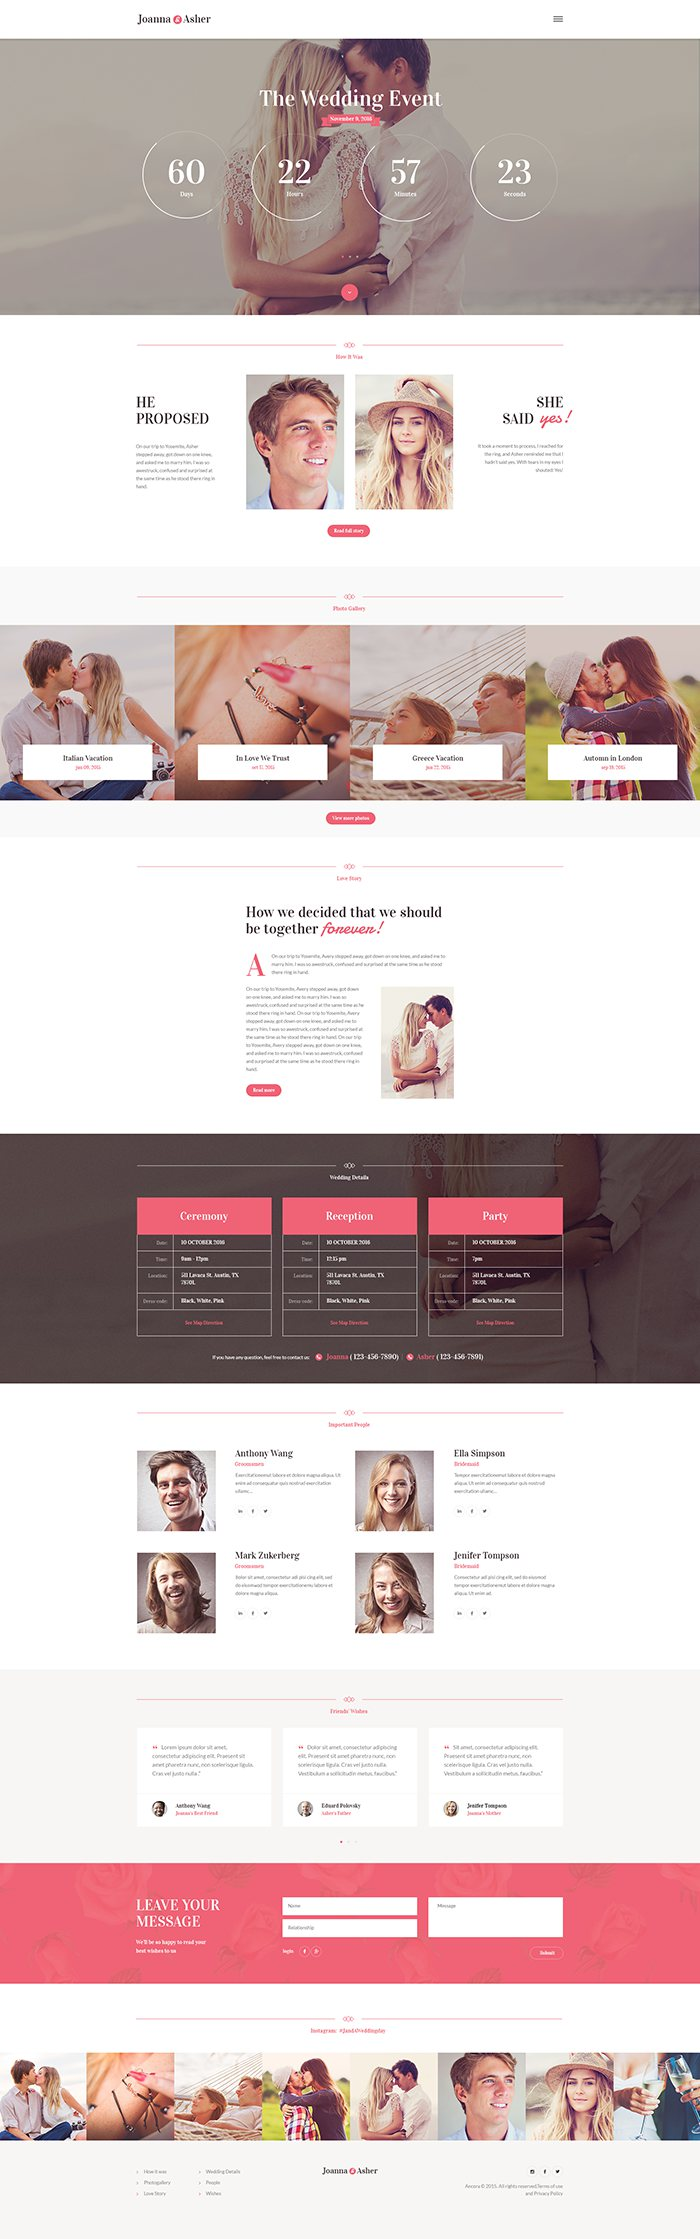 wedding-day-event-wordpress-theme 2